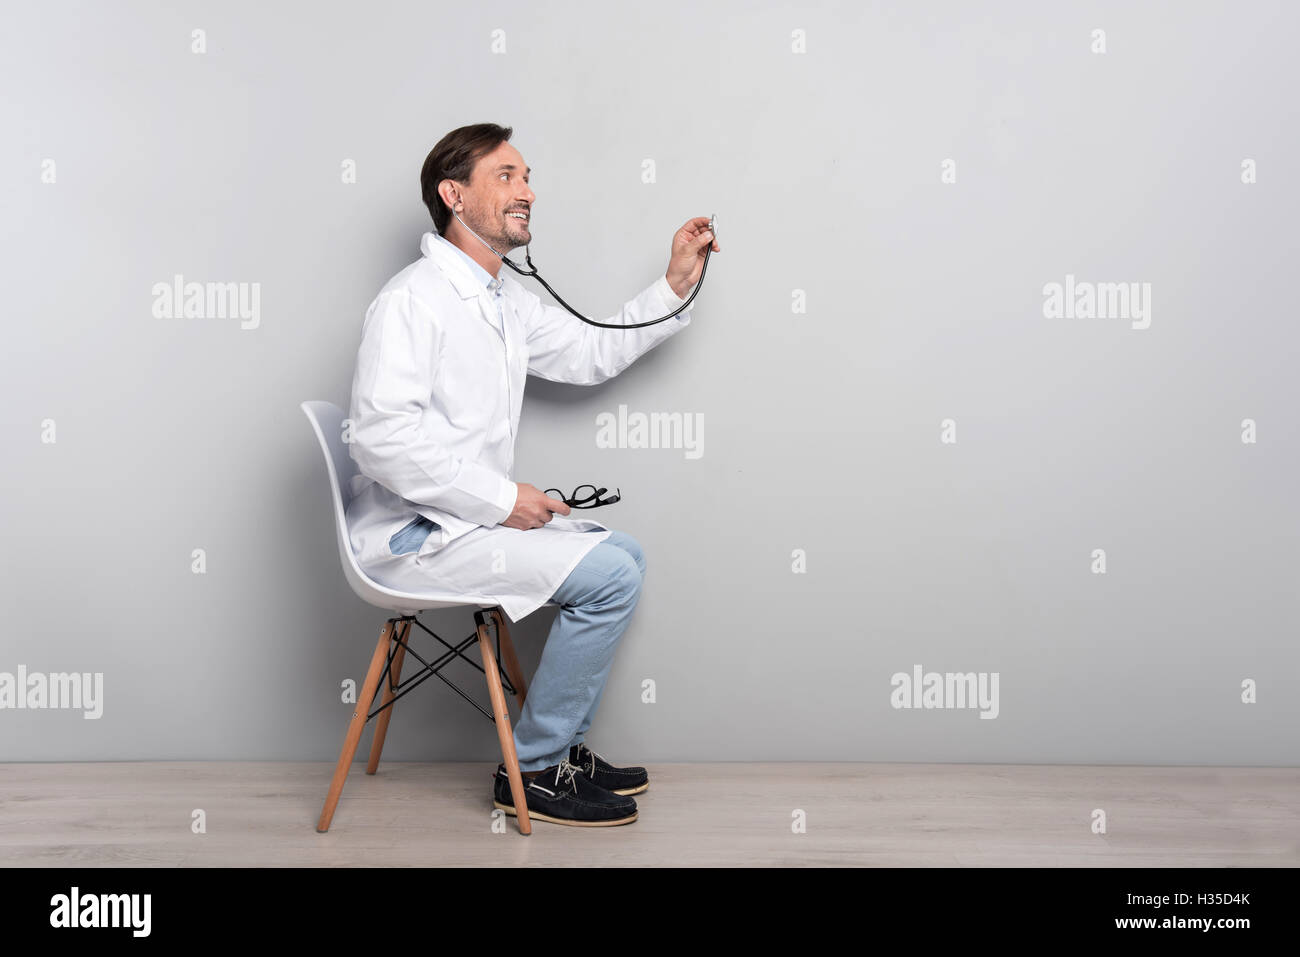 Happy doctor with stethoscope doing his work - Stock Image